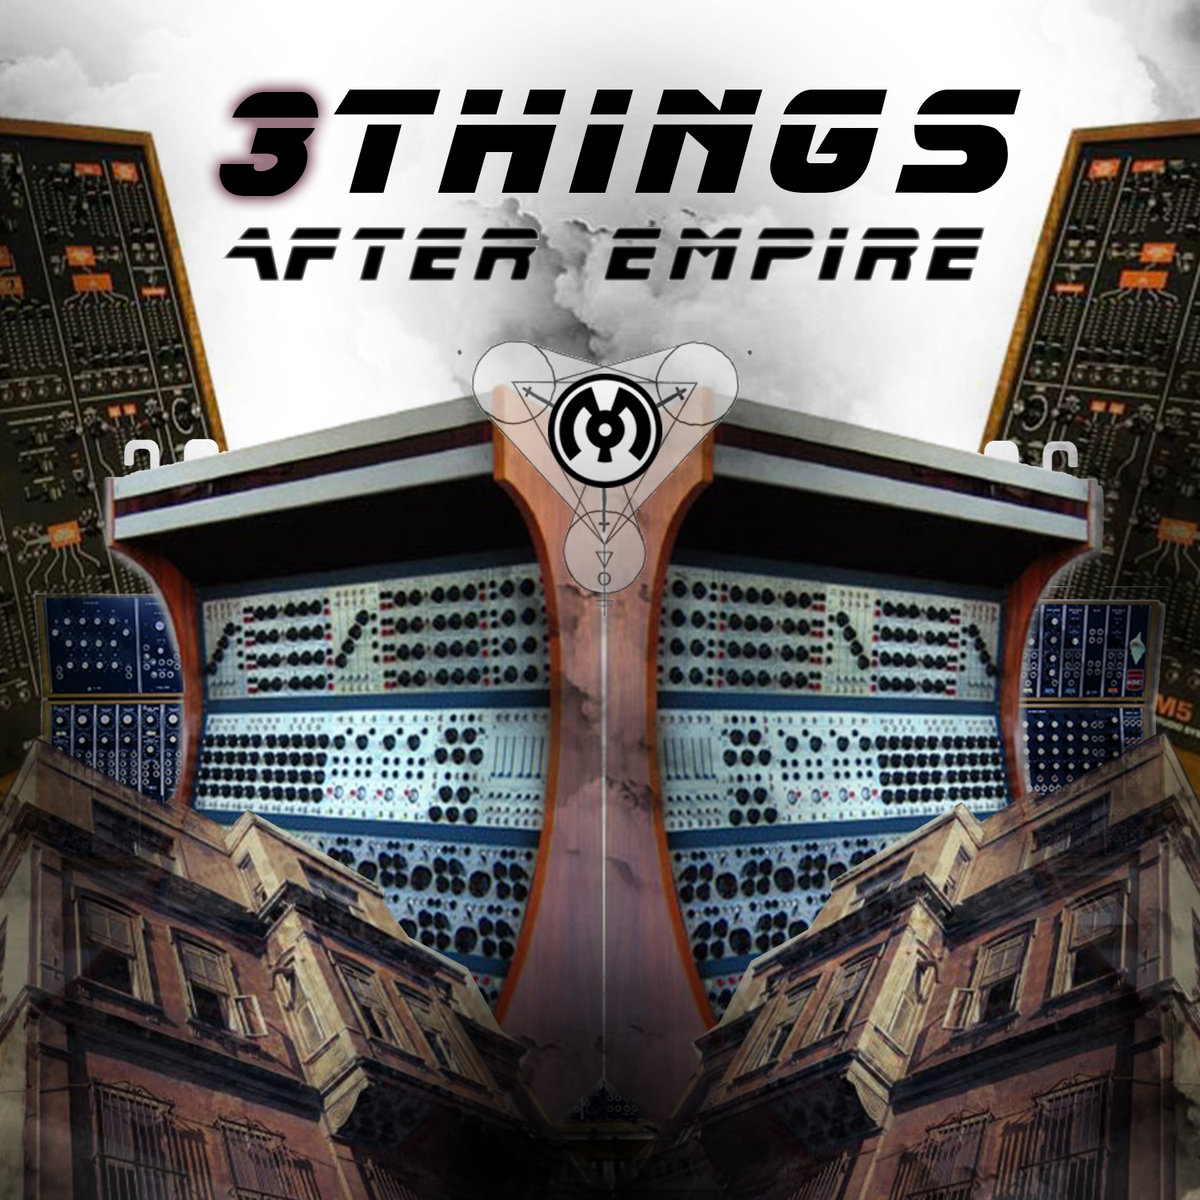 After Empire - 3 Things